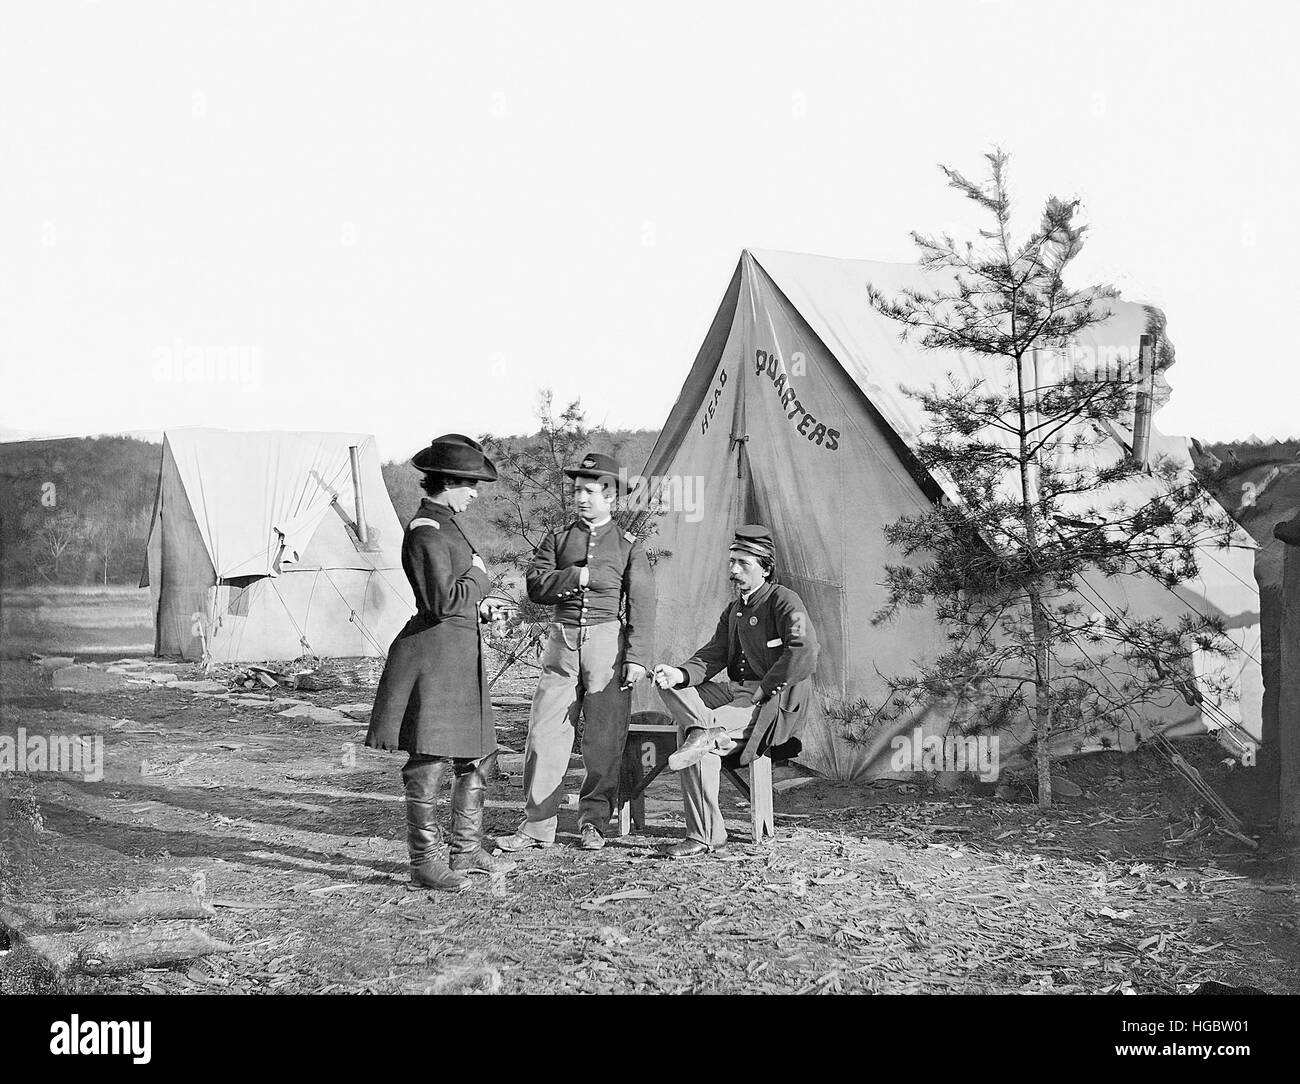 Lieutenant Colonel Michael C. Murphy and Officers at their encampment. - Stock Image